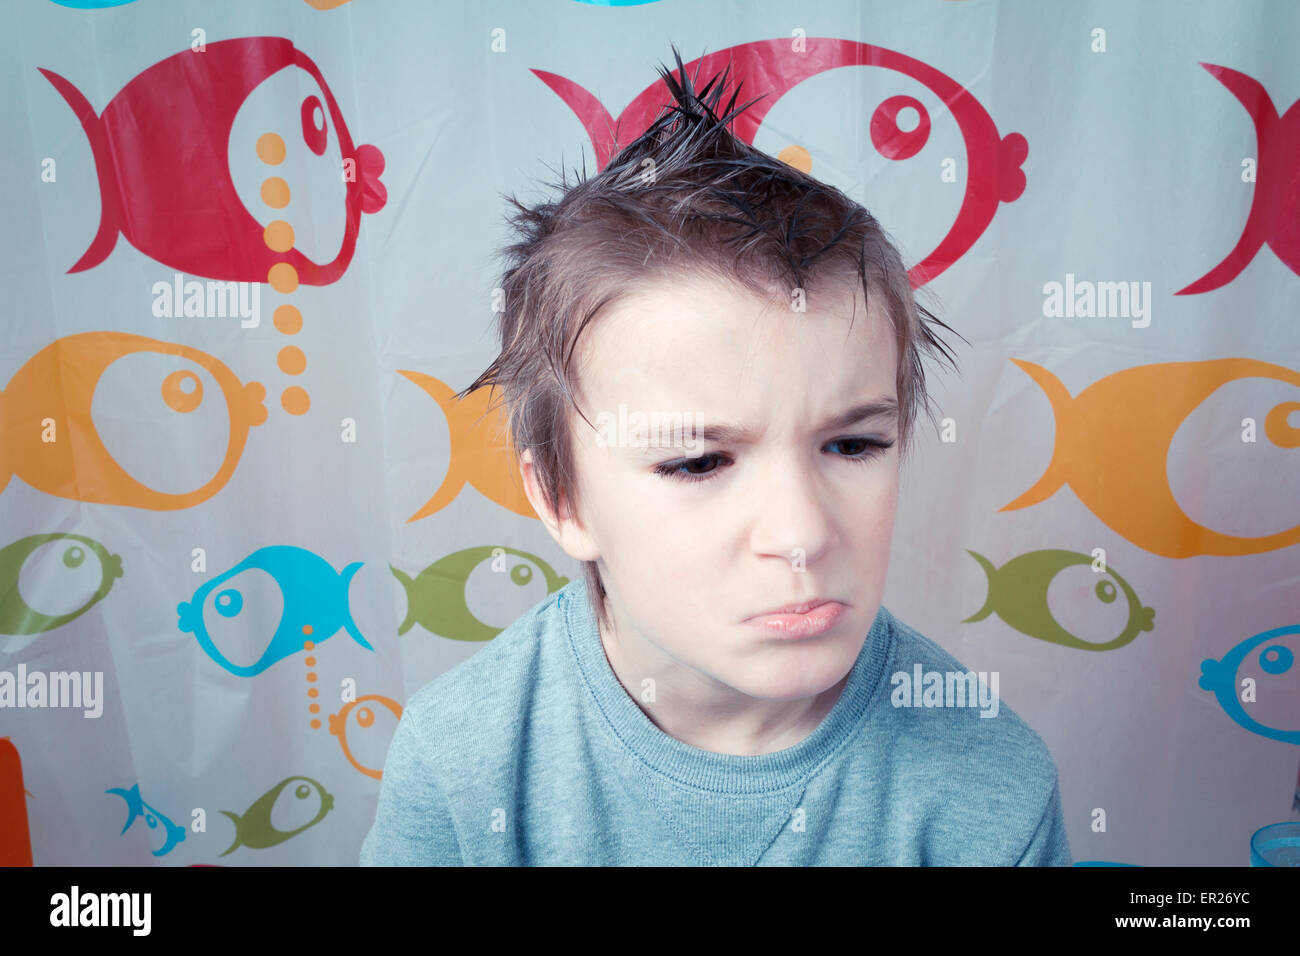 boy 8 years hairstyle spiky hair making a face - Stock Image